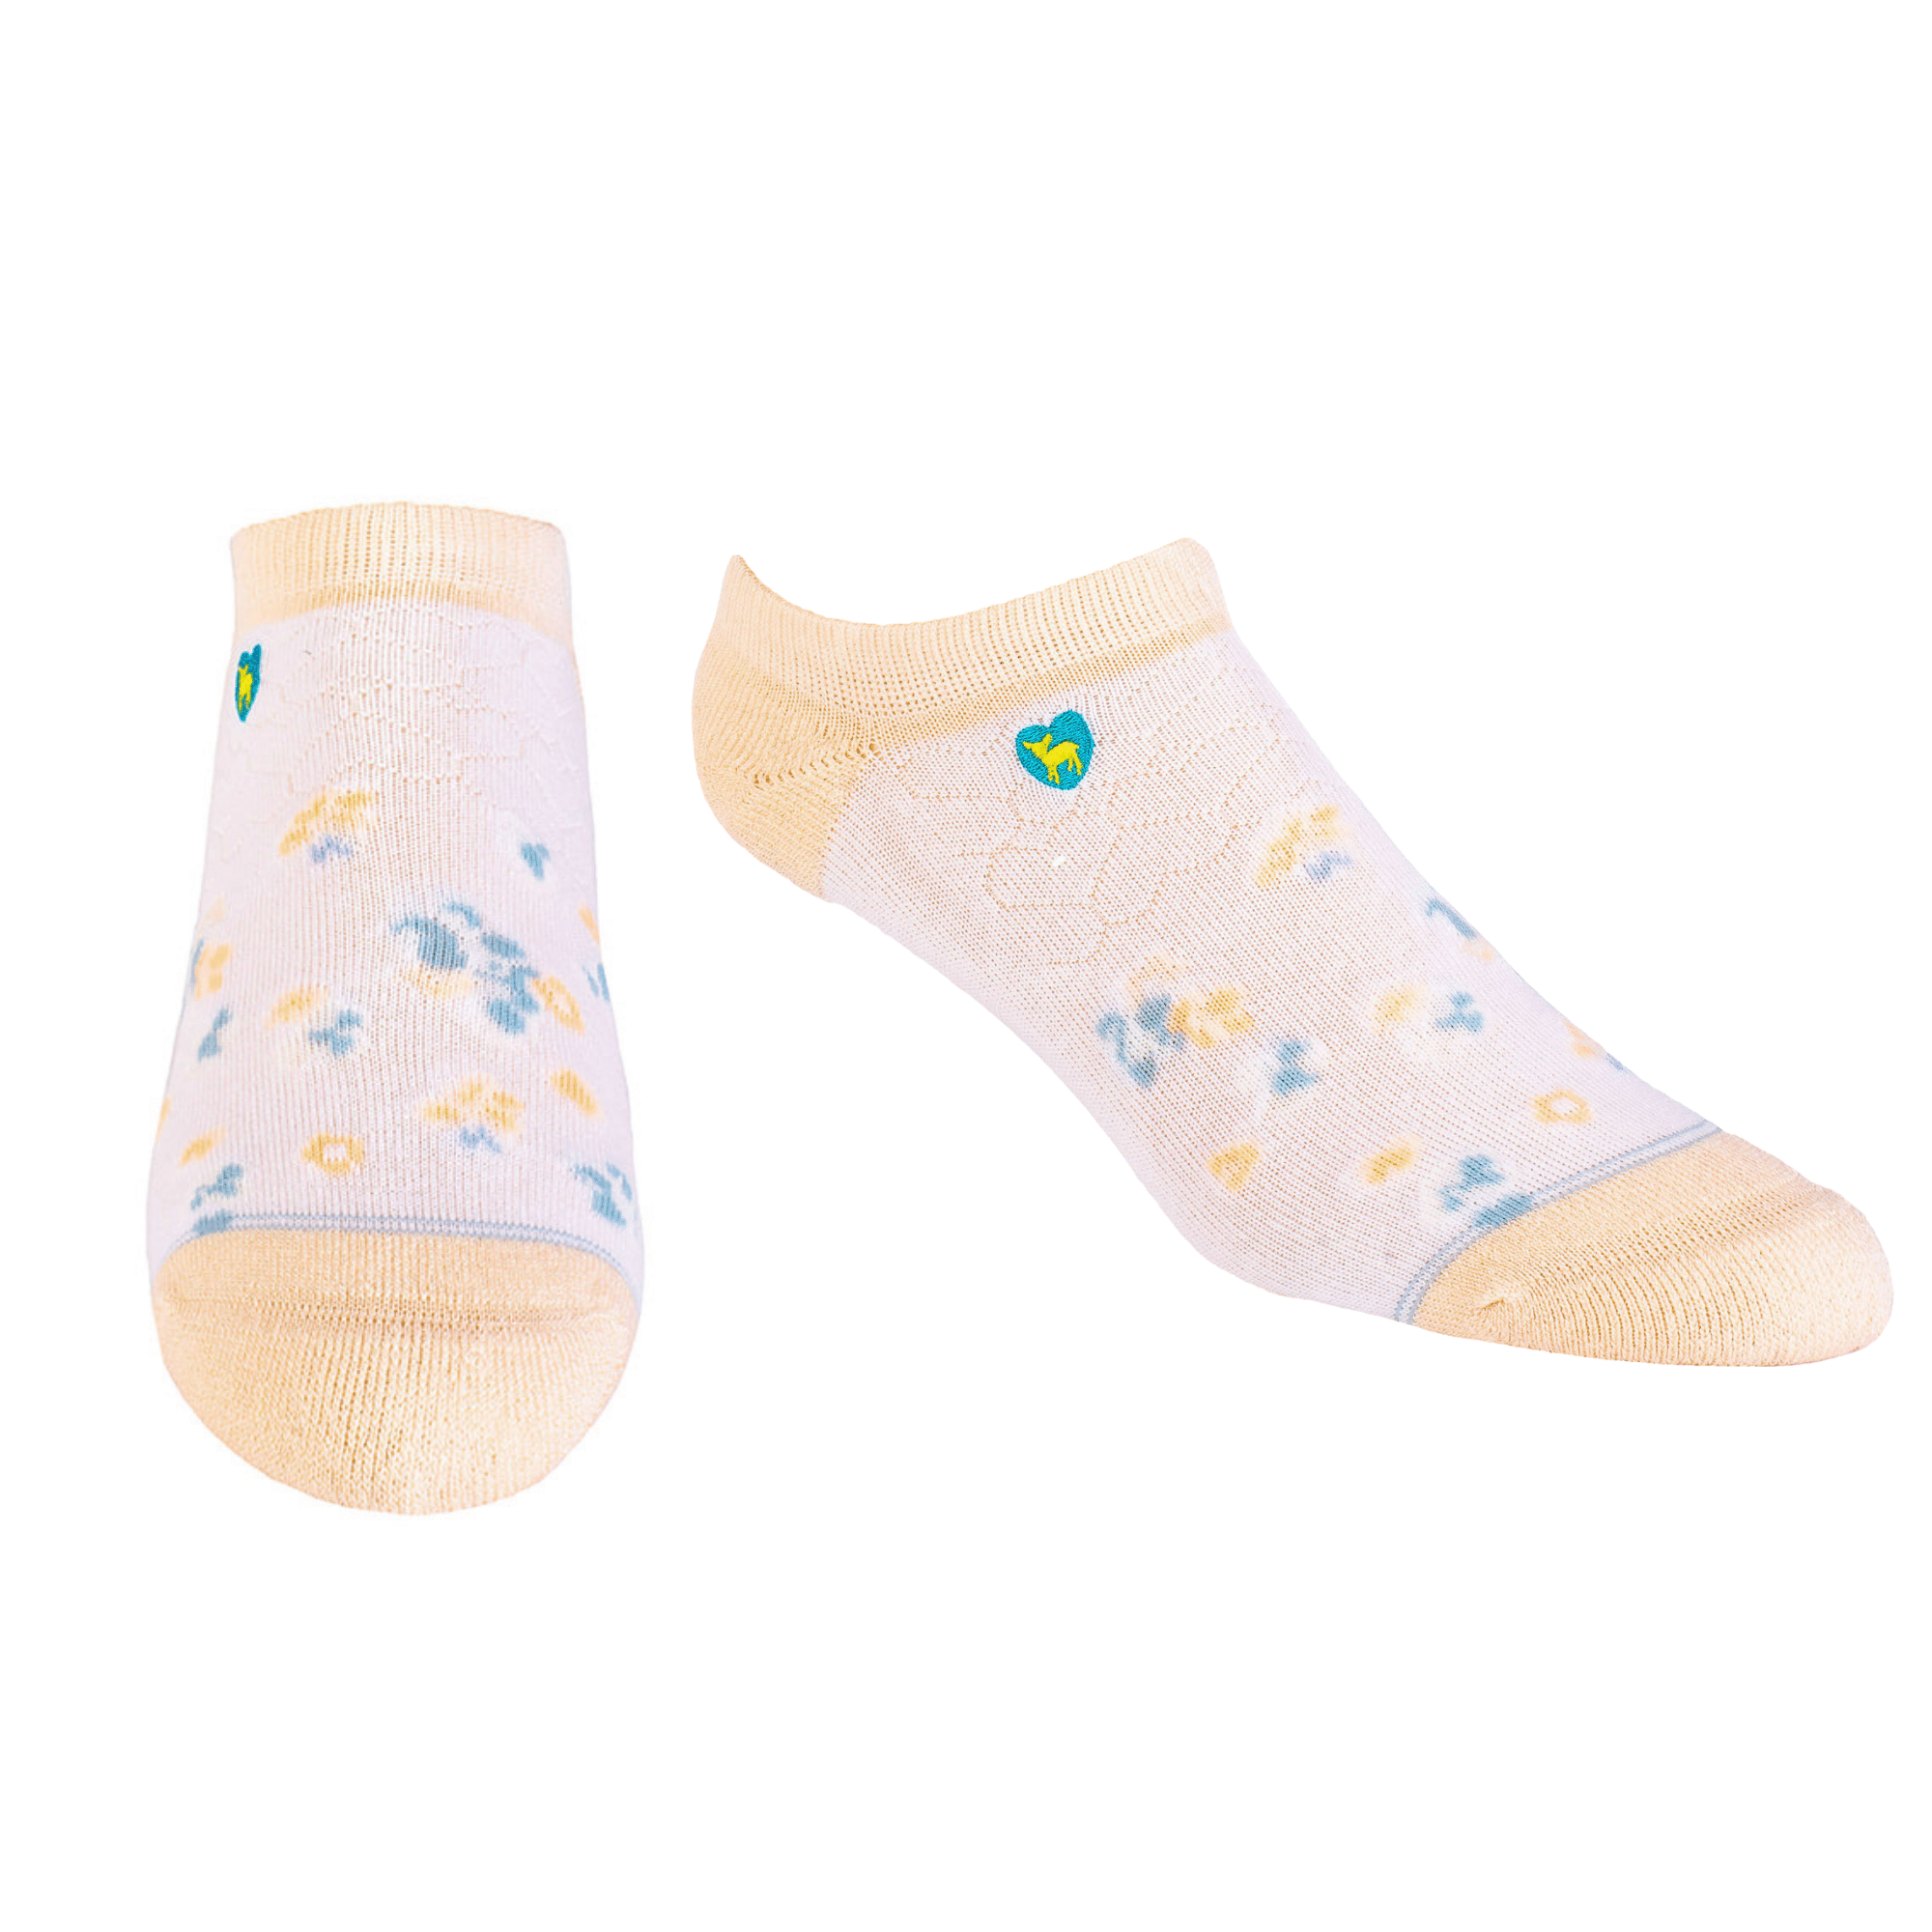 Bamboo Socks | Everyday Ankle | Spring Blossom Peach